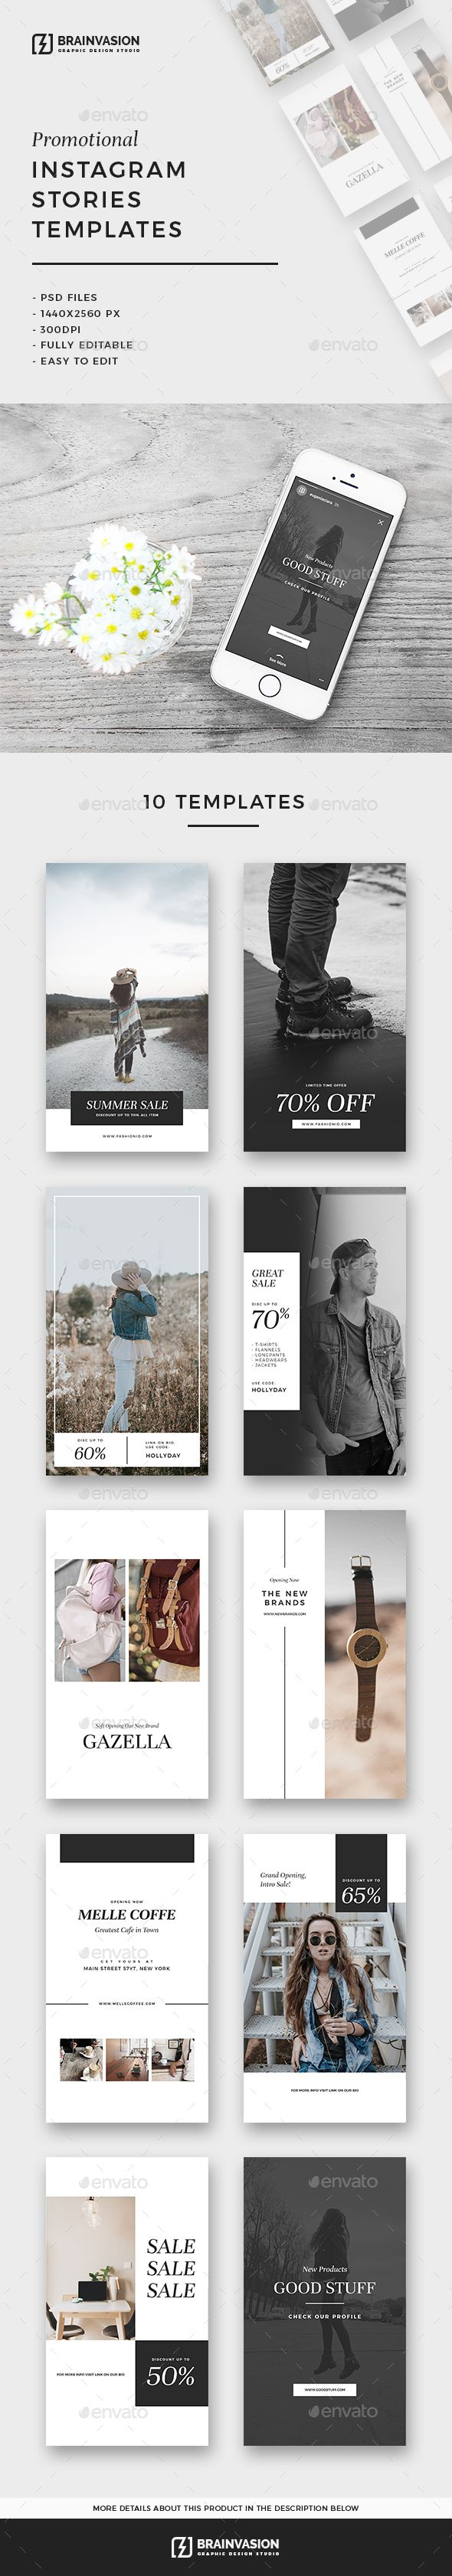 Promotional Instagram Stories Templates — Photoshop PSD #social media #photoshop stories • Download ➝ https://graphicriver.net/item/promotional-instagram-stories-templates/20193036?ref=pxcr